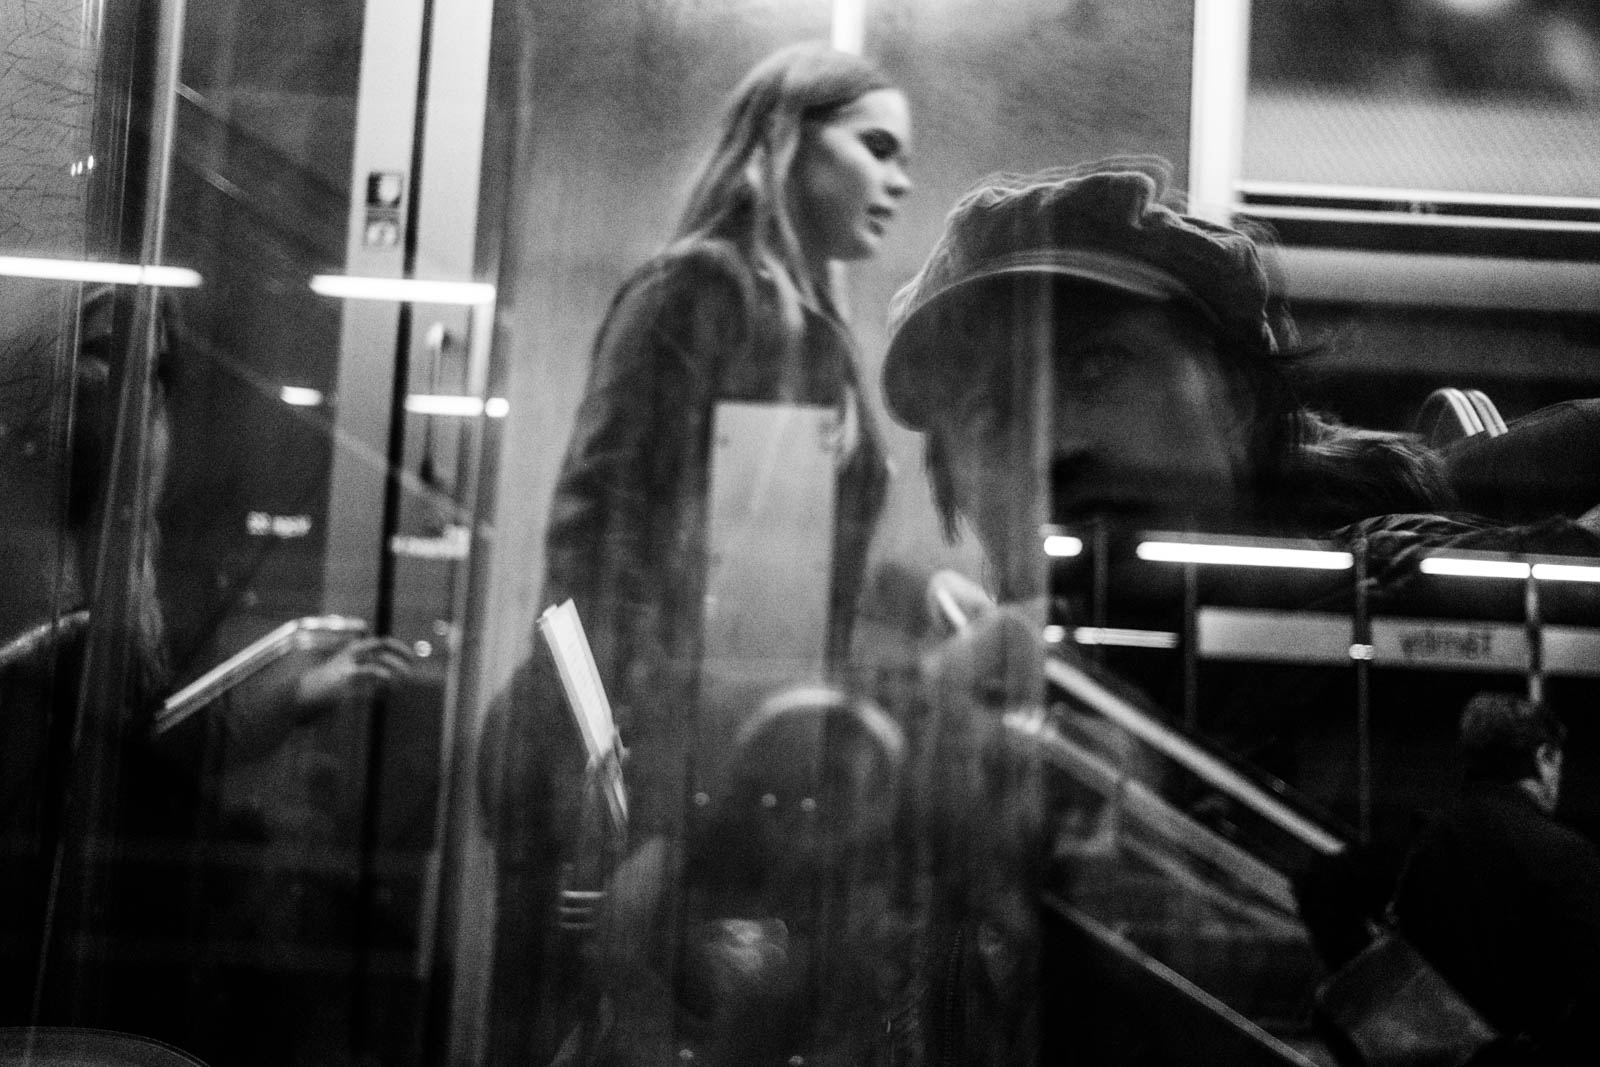 Self portrait with a stranger, on the train somewhere in Malmö, Sweden.